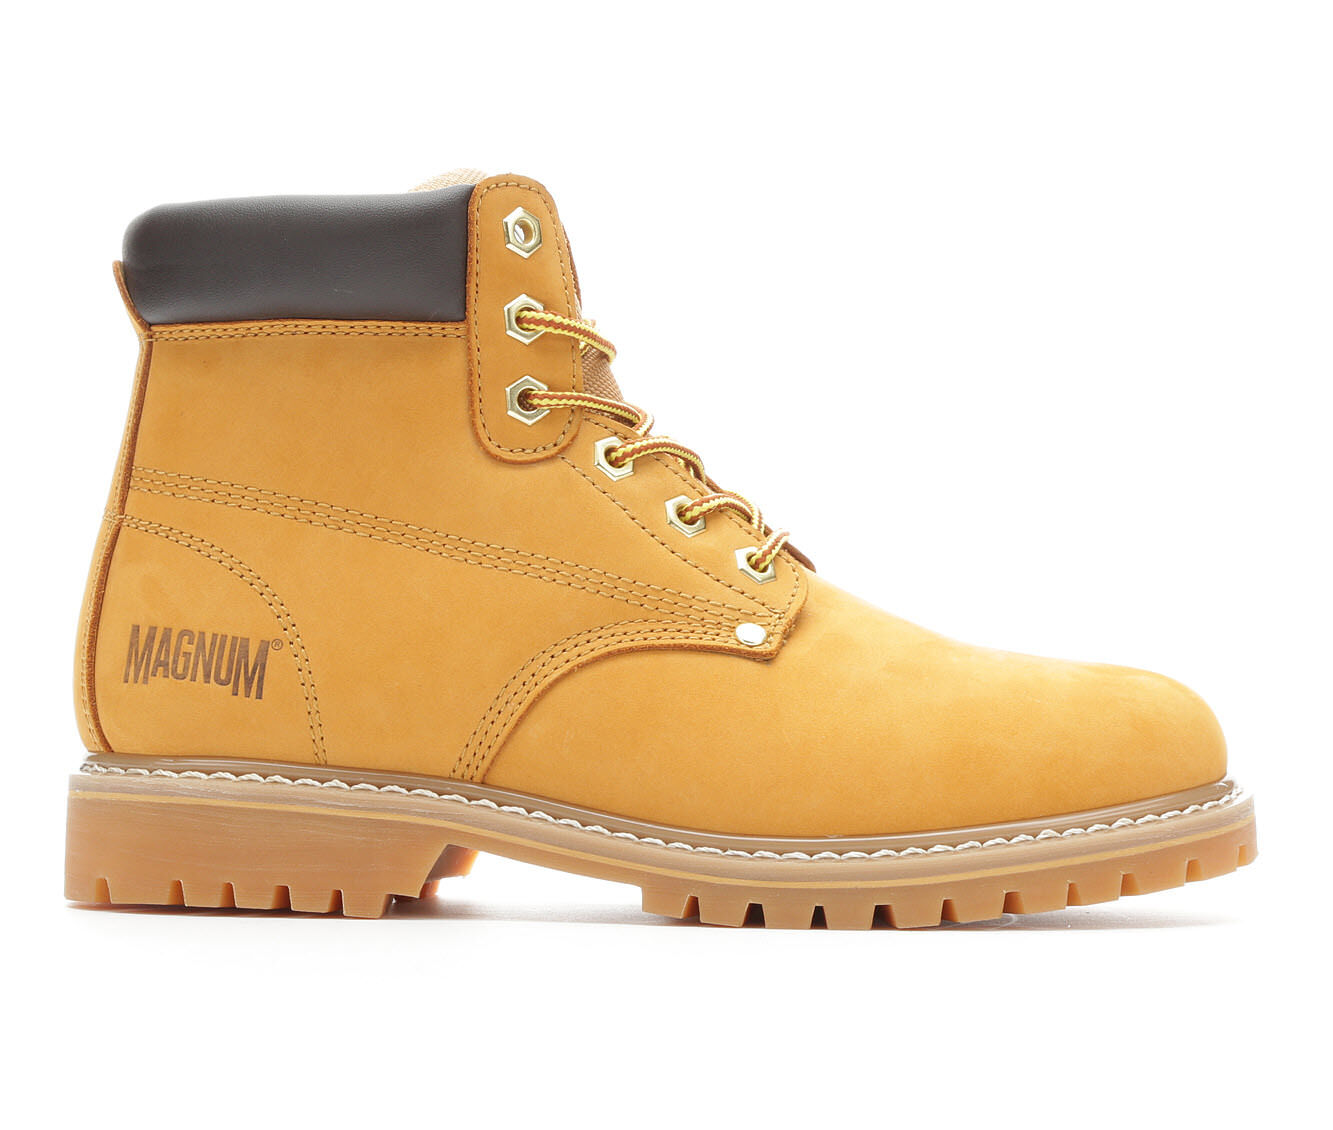 best deals Men's Magnum Gritstone Mid Soft Toe Work Boots Wheat